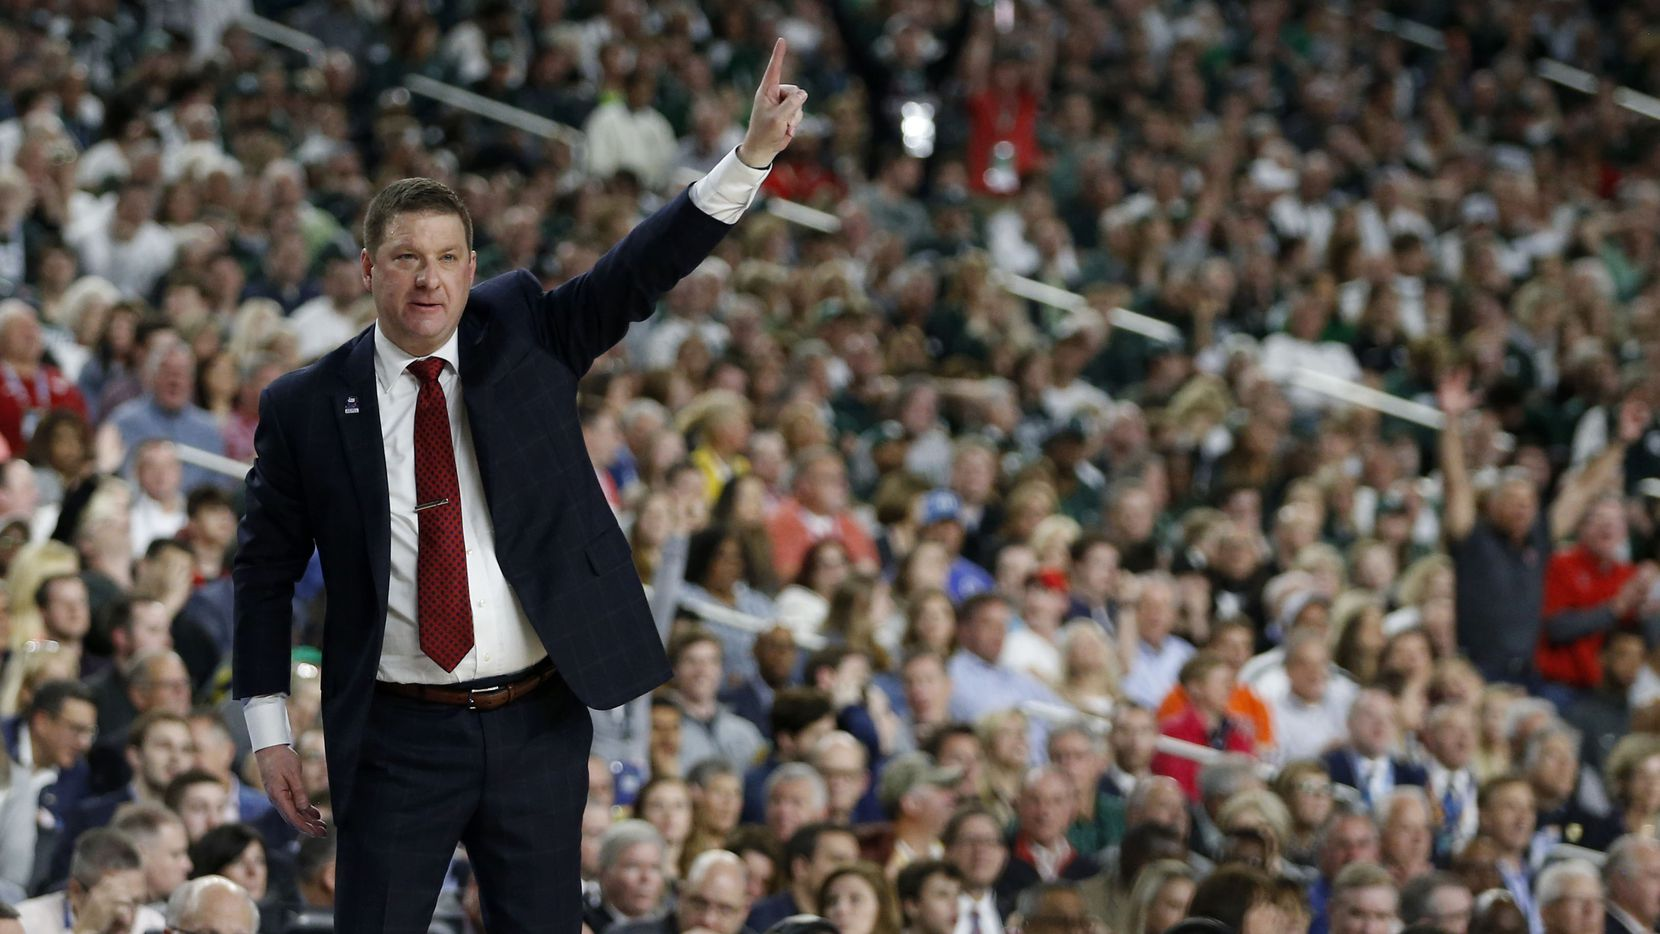 Texas Tech Red Raiders head coach Chris Beard communicates to his players in a game against the Michigan State Spartans during the second half of play in the semifinals of the Final Four NCAA college basketball tournament at U.S. Bank Stadium in Minneapolis on Saturday, April 6, 2019. Texas Tech Red Raiders defeated the Michigan State Spartans 61-51.